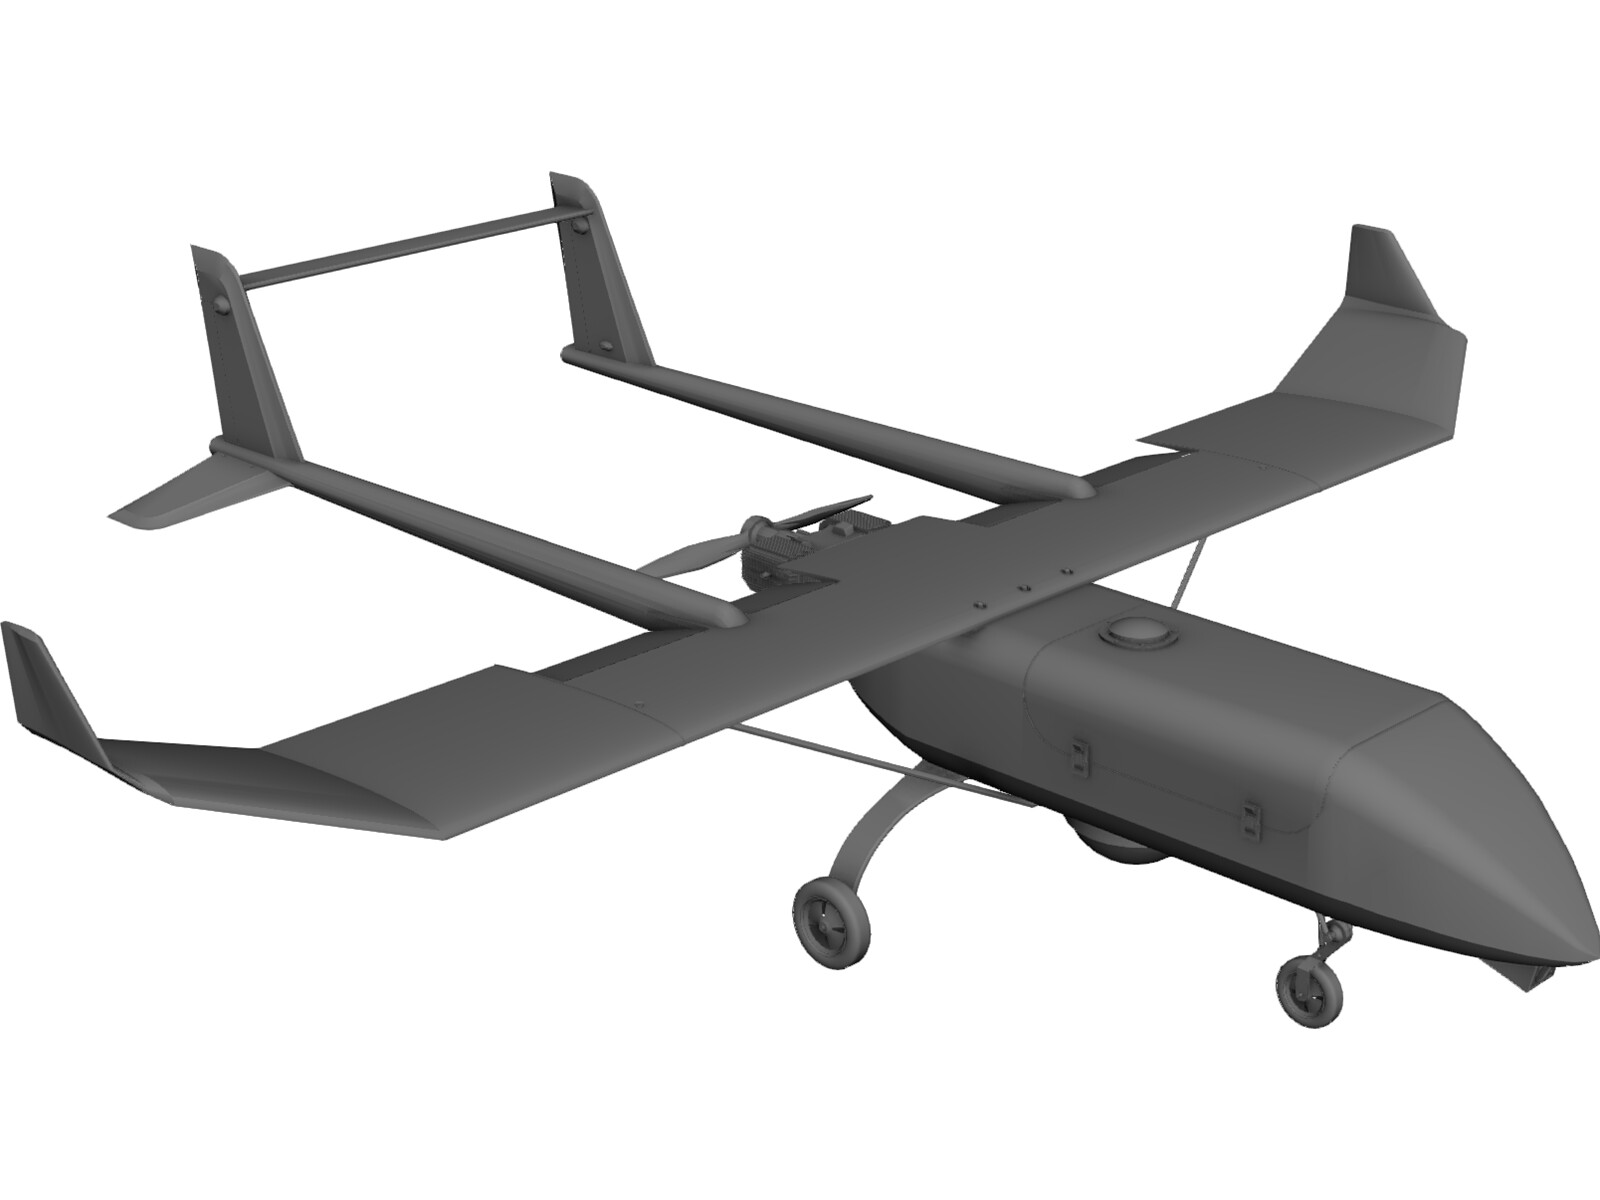 reaper drone rc model with Download on  further China X Wing in addition Wiring Schematics For The Mq 9a further 140766465273 additionally Drone Design 4 z9F02vfUjfw36i6TuWeNxzPuB8Oo3pBYg29P ZI5c.